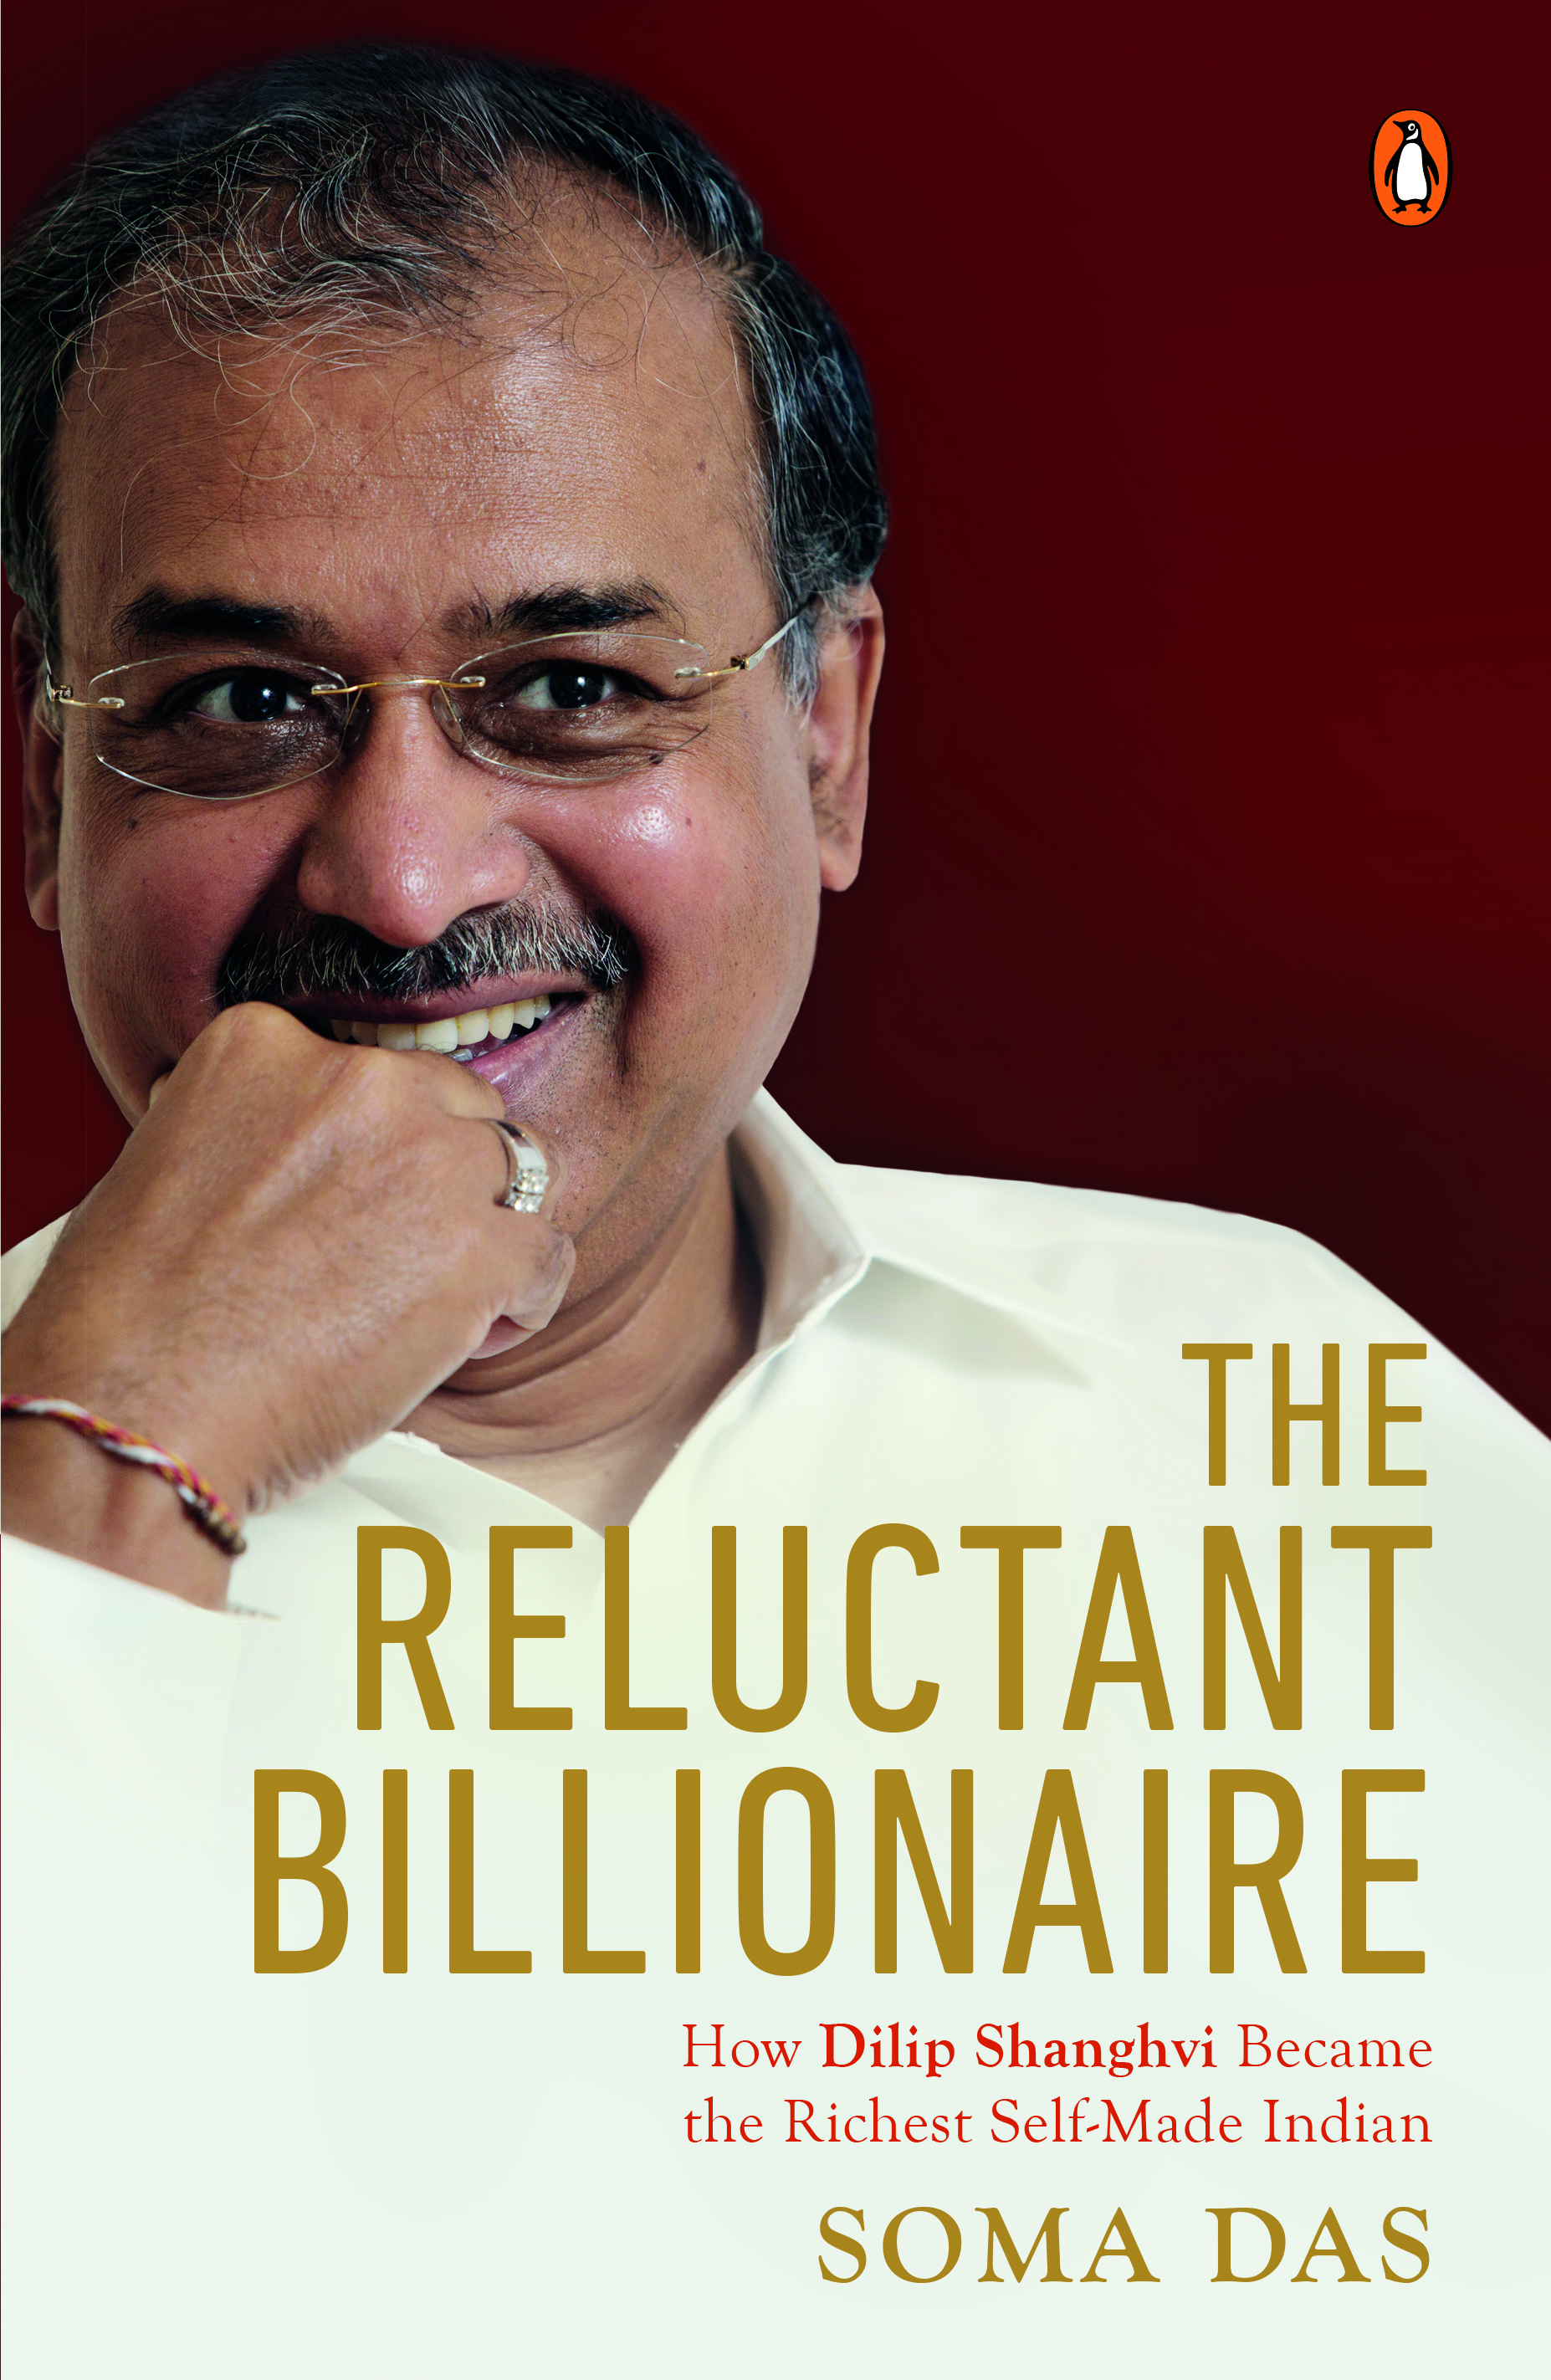 Book cover: The Reluctant Billionaire: How Dilip Shanghvi Became the Richest Self-Made Indian by Soma Das